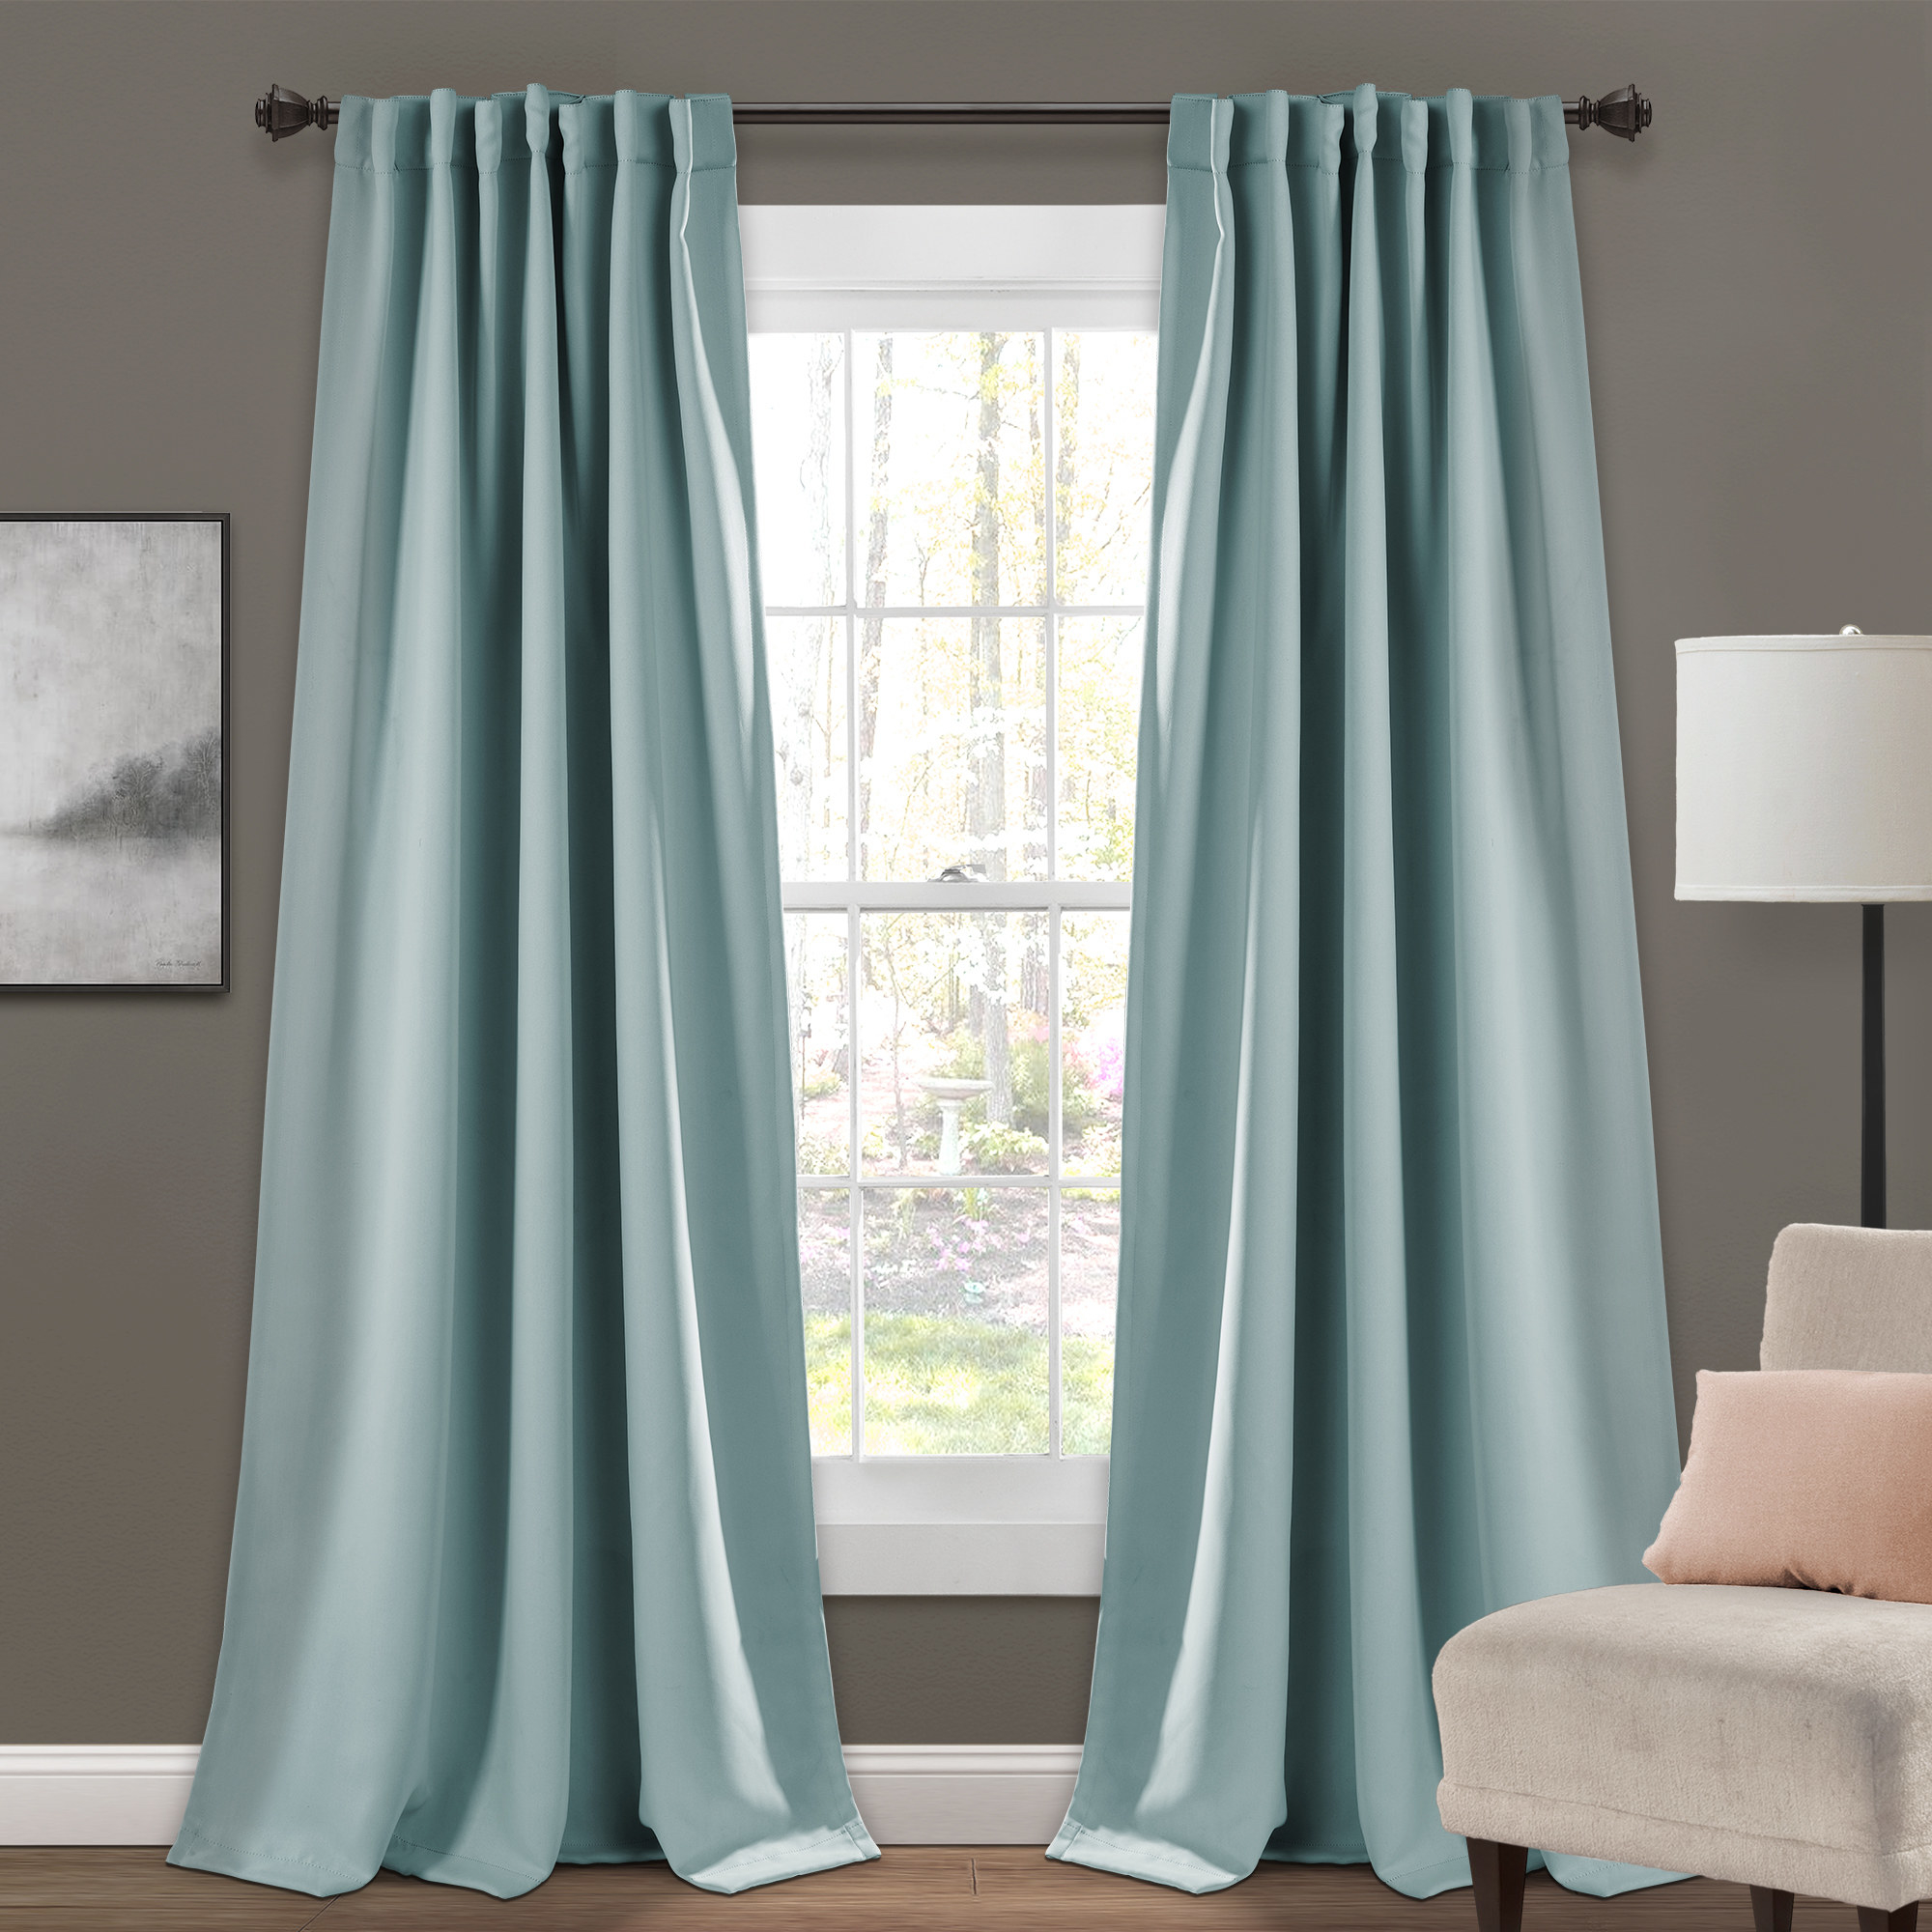 the curtains in blue